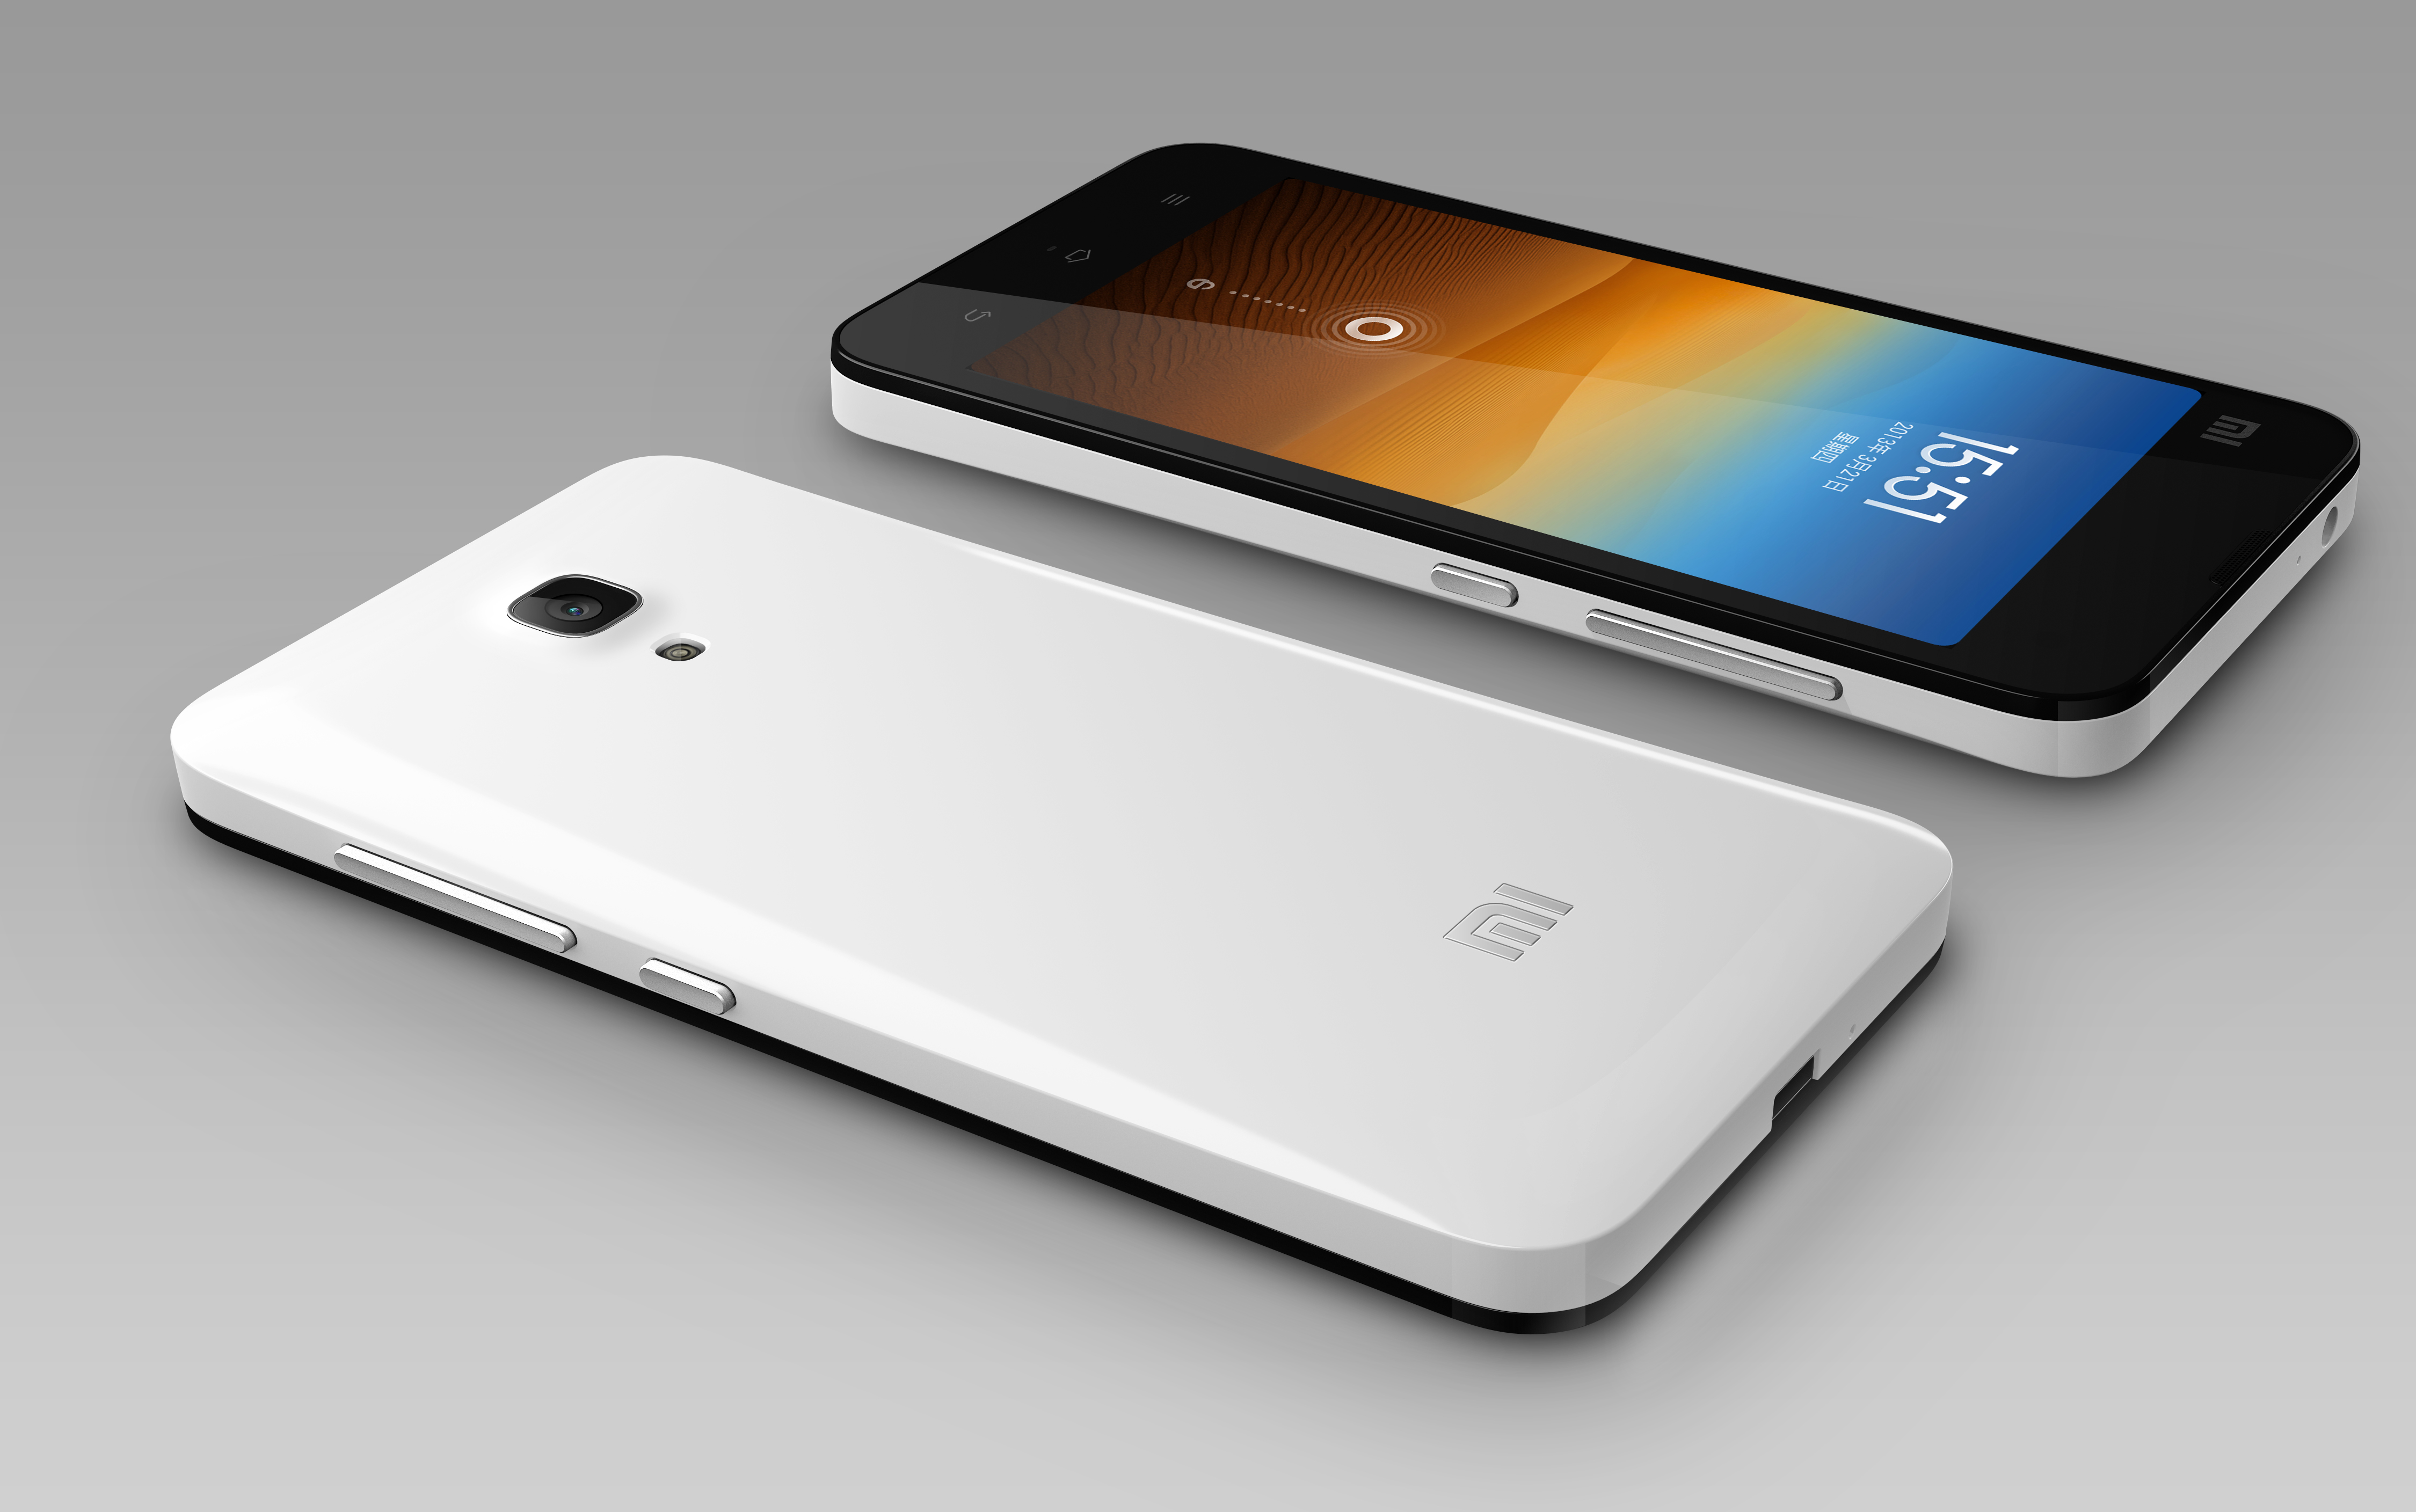 Xiaomi will sell its first smartphone in India, the $250 Mi 3, on July 15